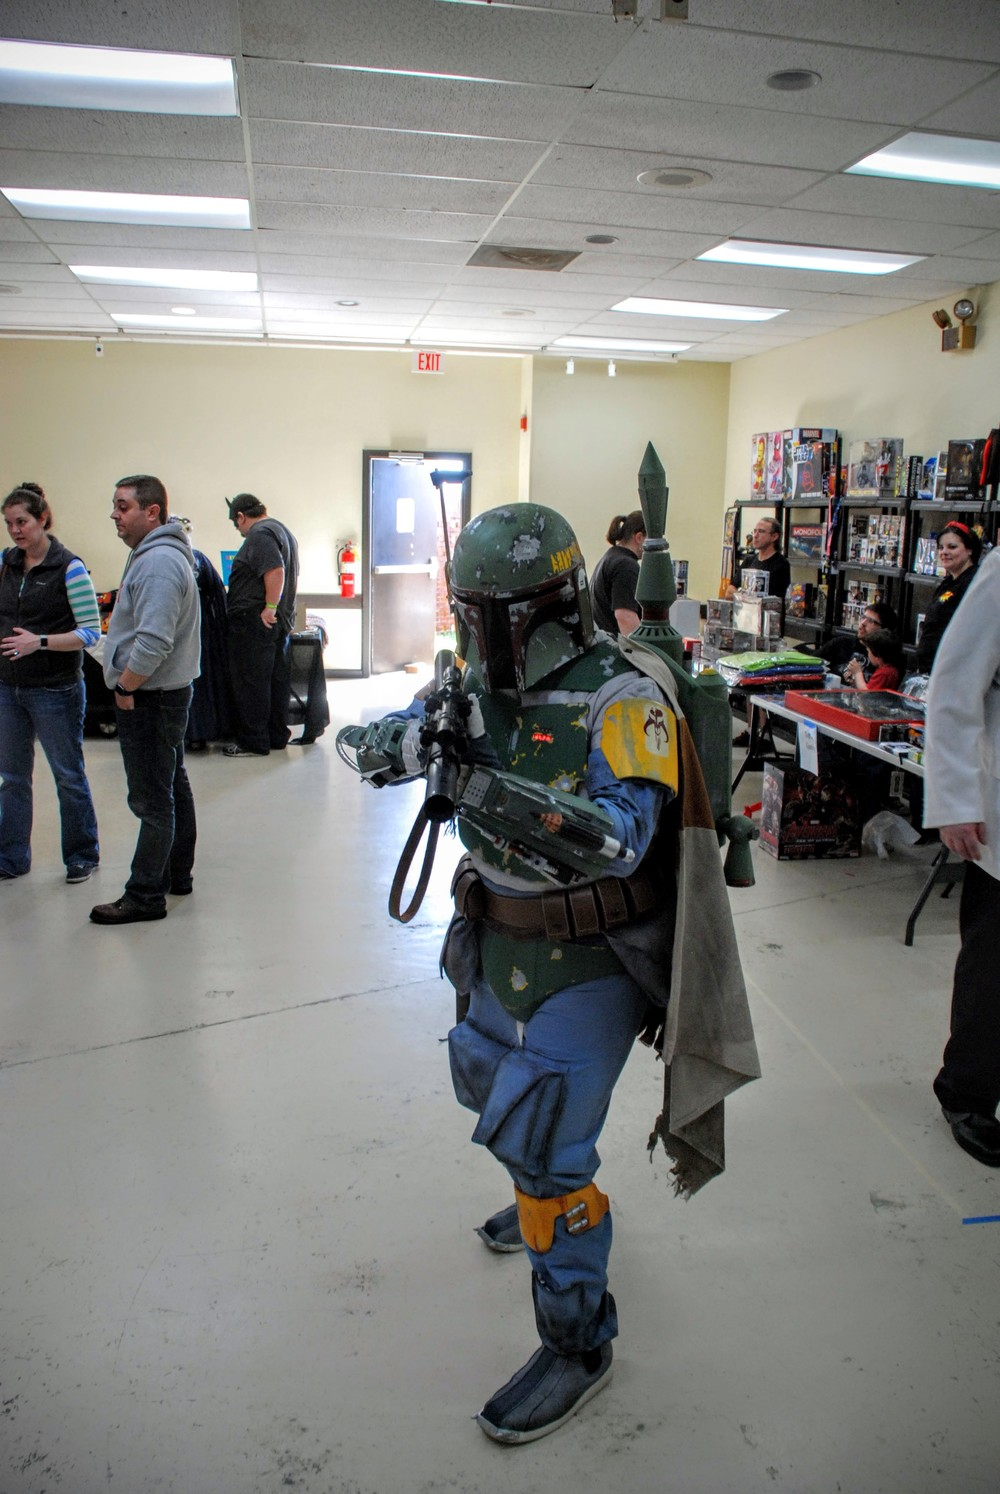 Boba Fett stopped us for some intel on a bounty he was looking for